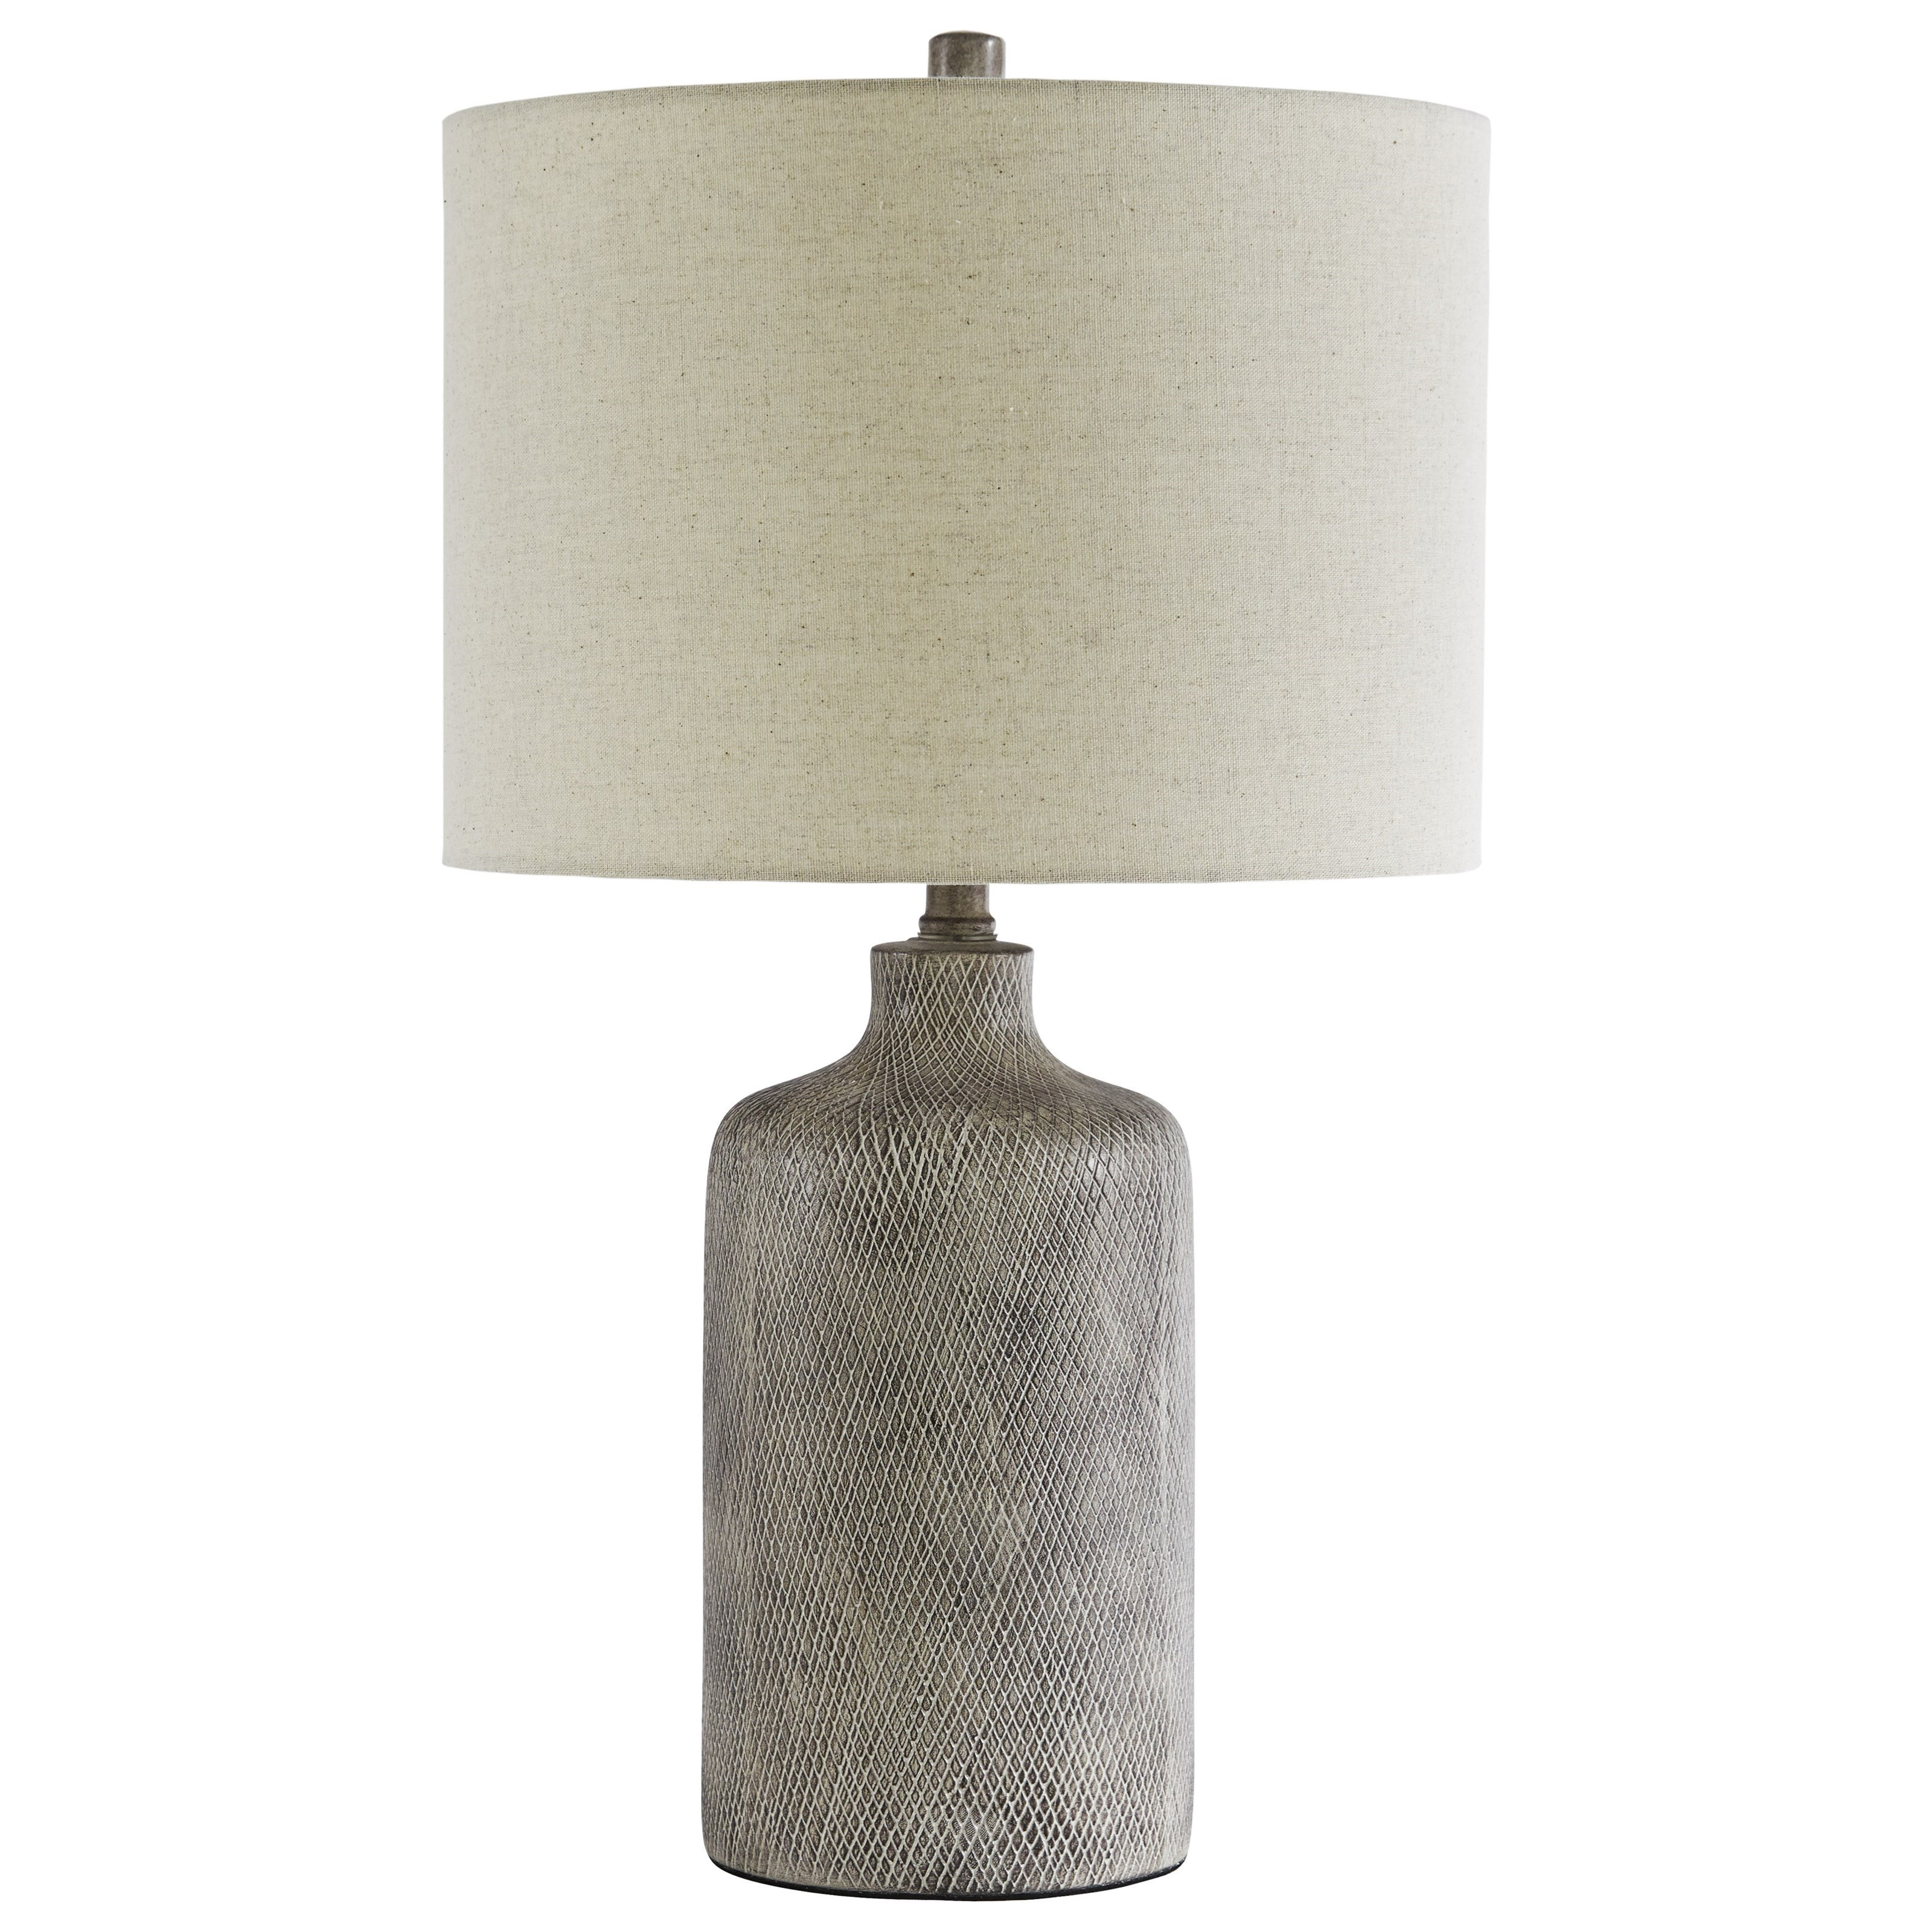 Lamps - Contemporary Linus Antique Black Ceramic Table Lamp by Ashley (Signature Design) at Johnny Janosik